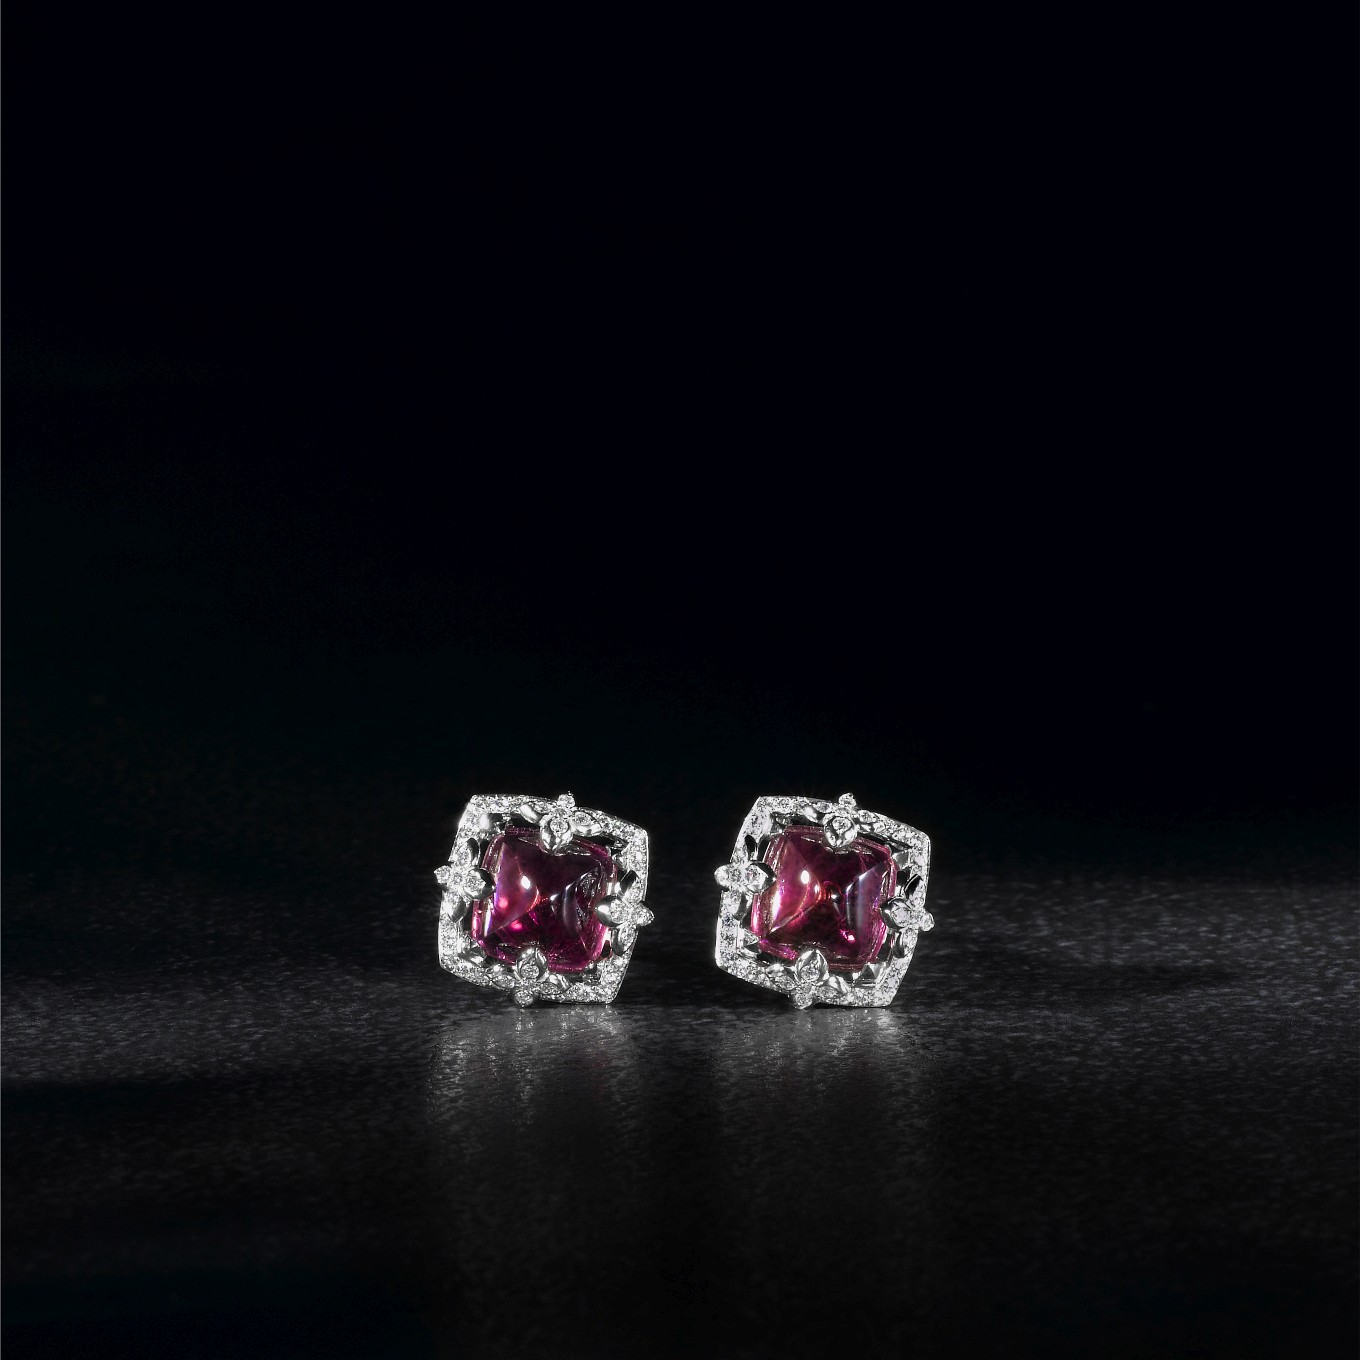 PINK TOURMALINE & DIAMOND SEVILLA EARRINGS